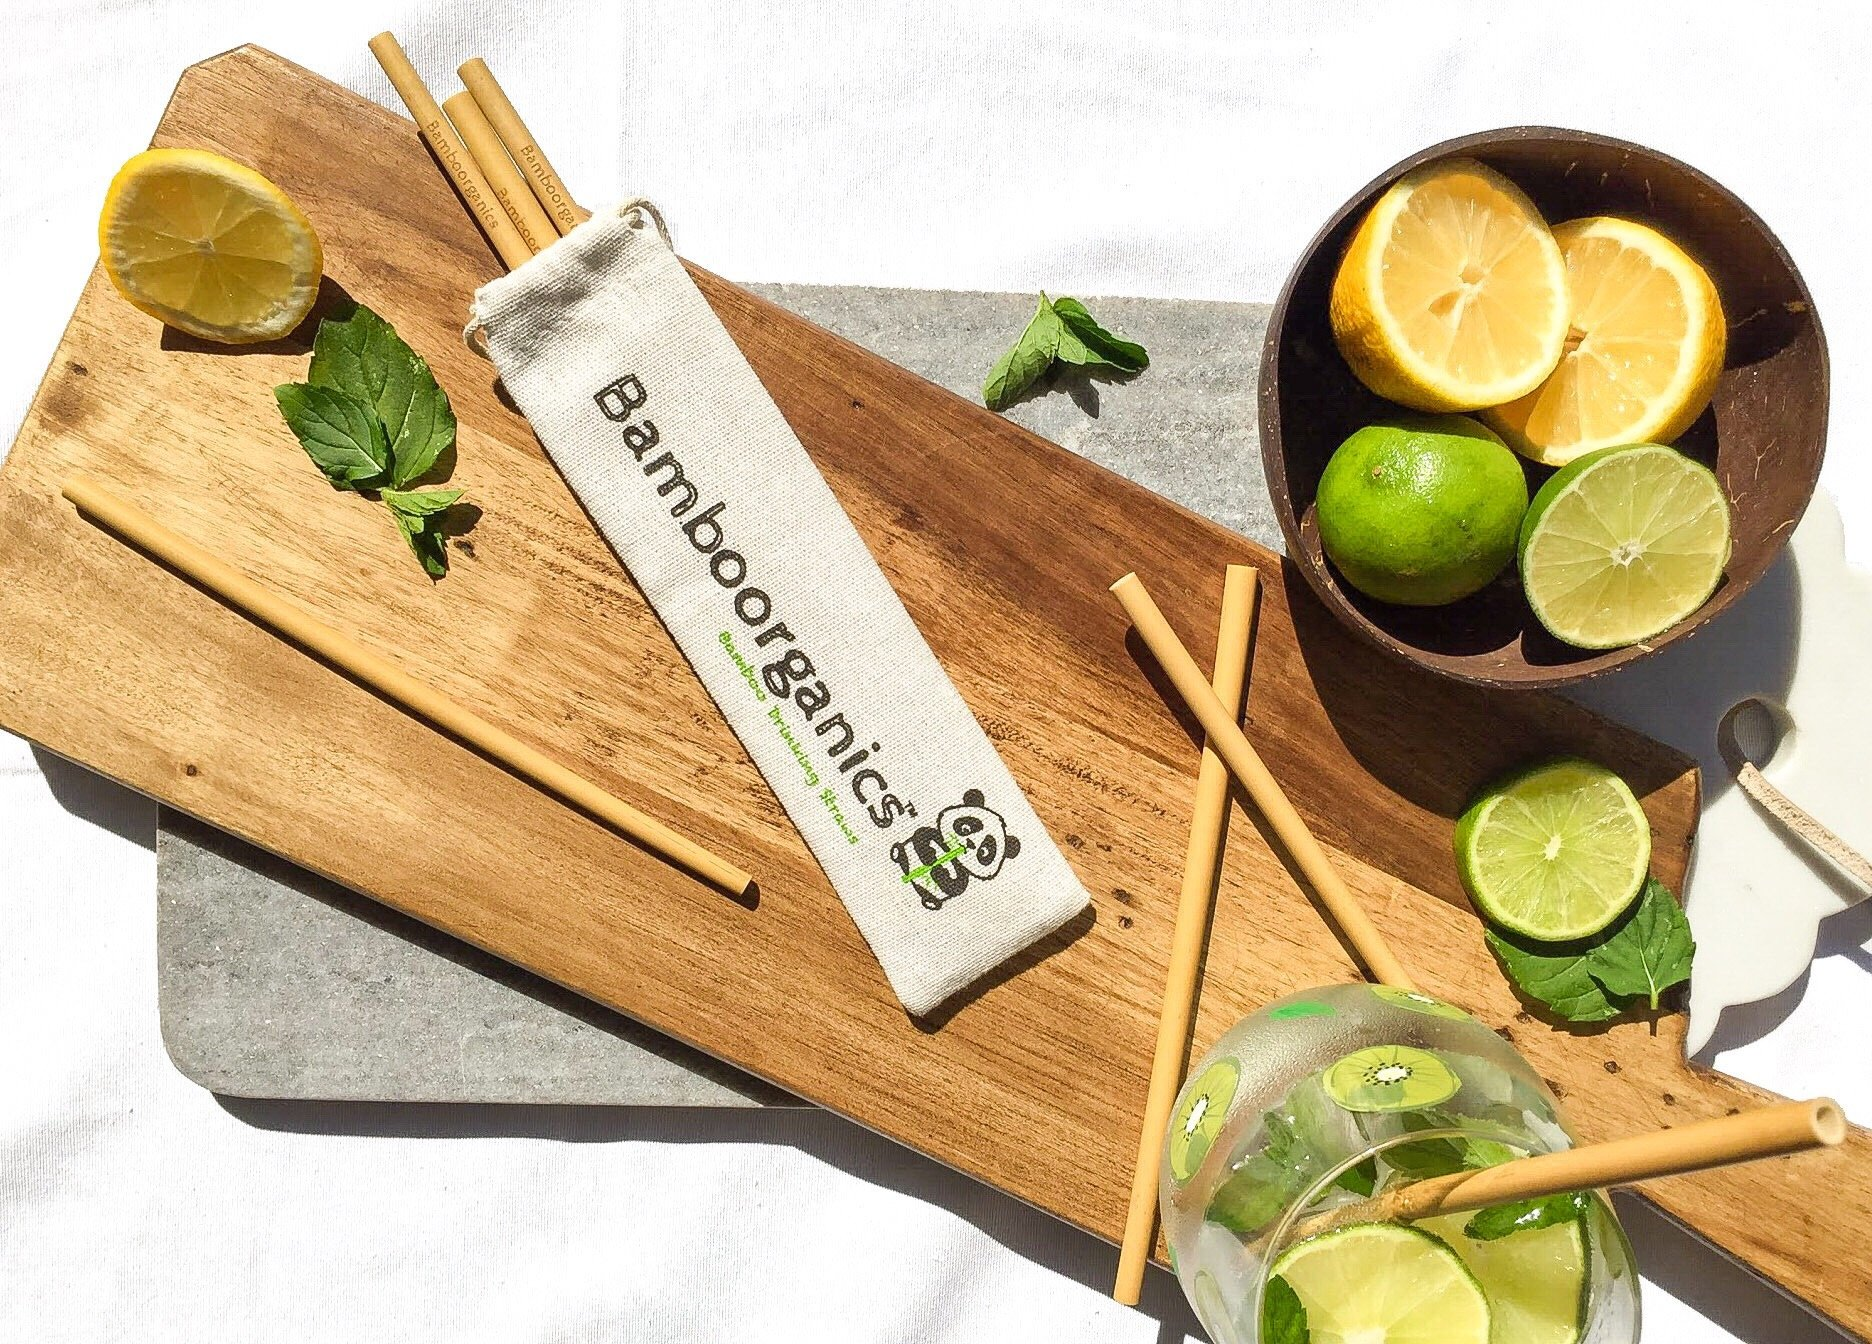 Zero Waste, Reusable, Premium Bamboo Drinking Straws & Natural Cotton Travel Bag | Large Mouth Straw Set of 10 with 2 Cleaning Brushes | Eco-Friendly, Biodegradable | 8in Long by Bamboorganics (Image #5)